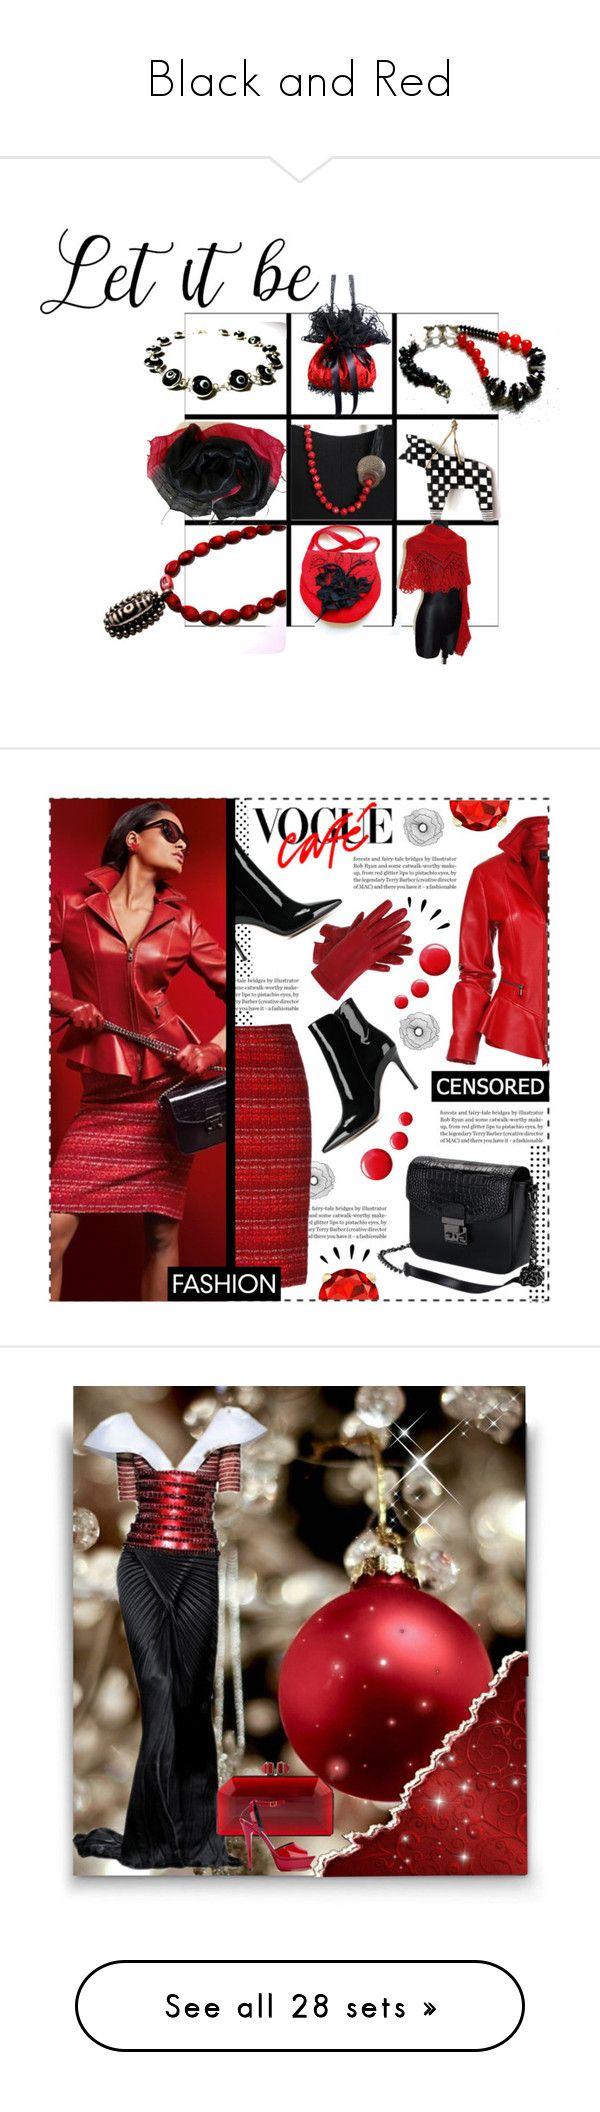 """Black and Red"" by alidishu ❤ liked on Polyvore featuring MATÌ, Bandolera, LetItBe, Improvements, Gianvito Rossi, Topshop, Old Navy, jewelry, earrings and red coral earrings"